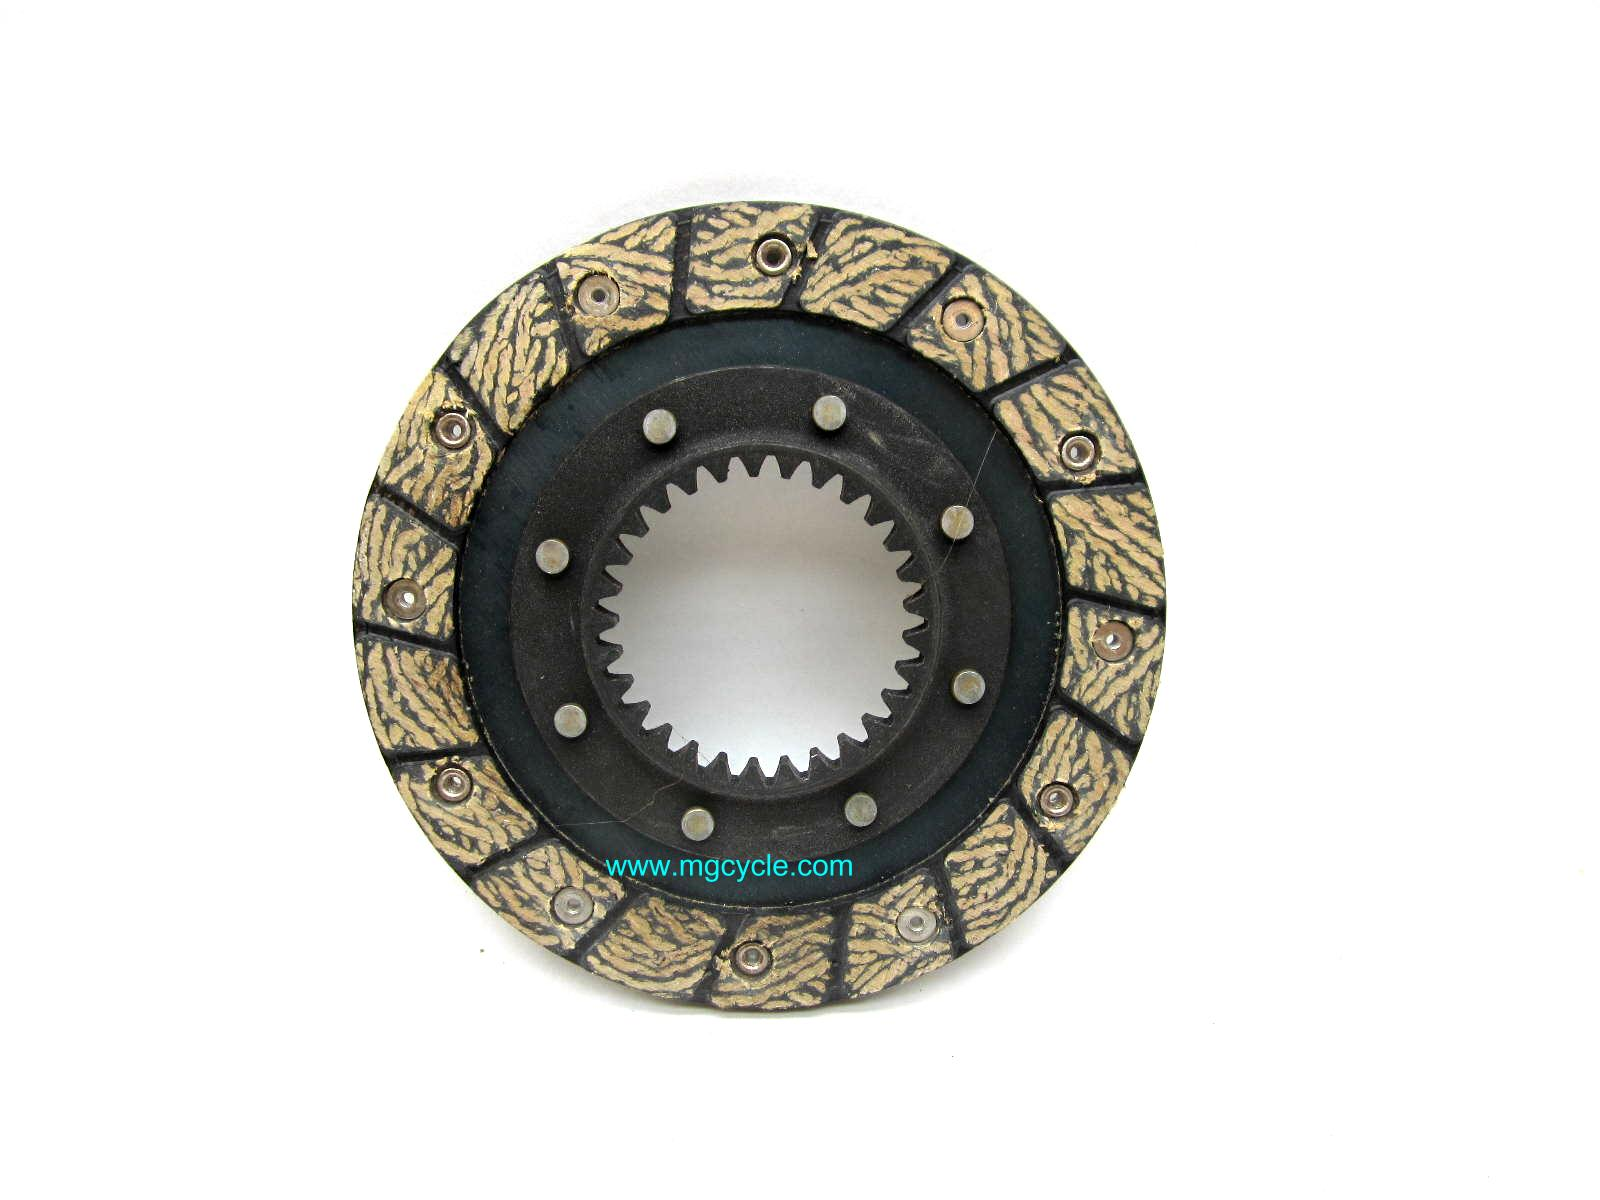 SD-TEC clutch plate, deep spline, bonded and riveted